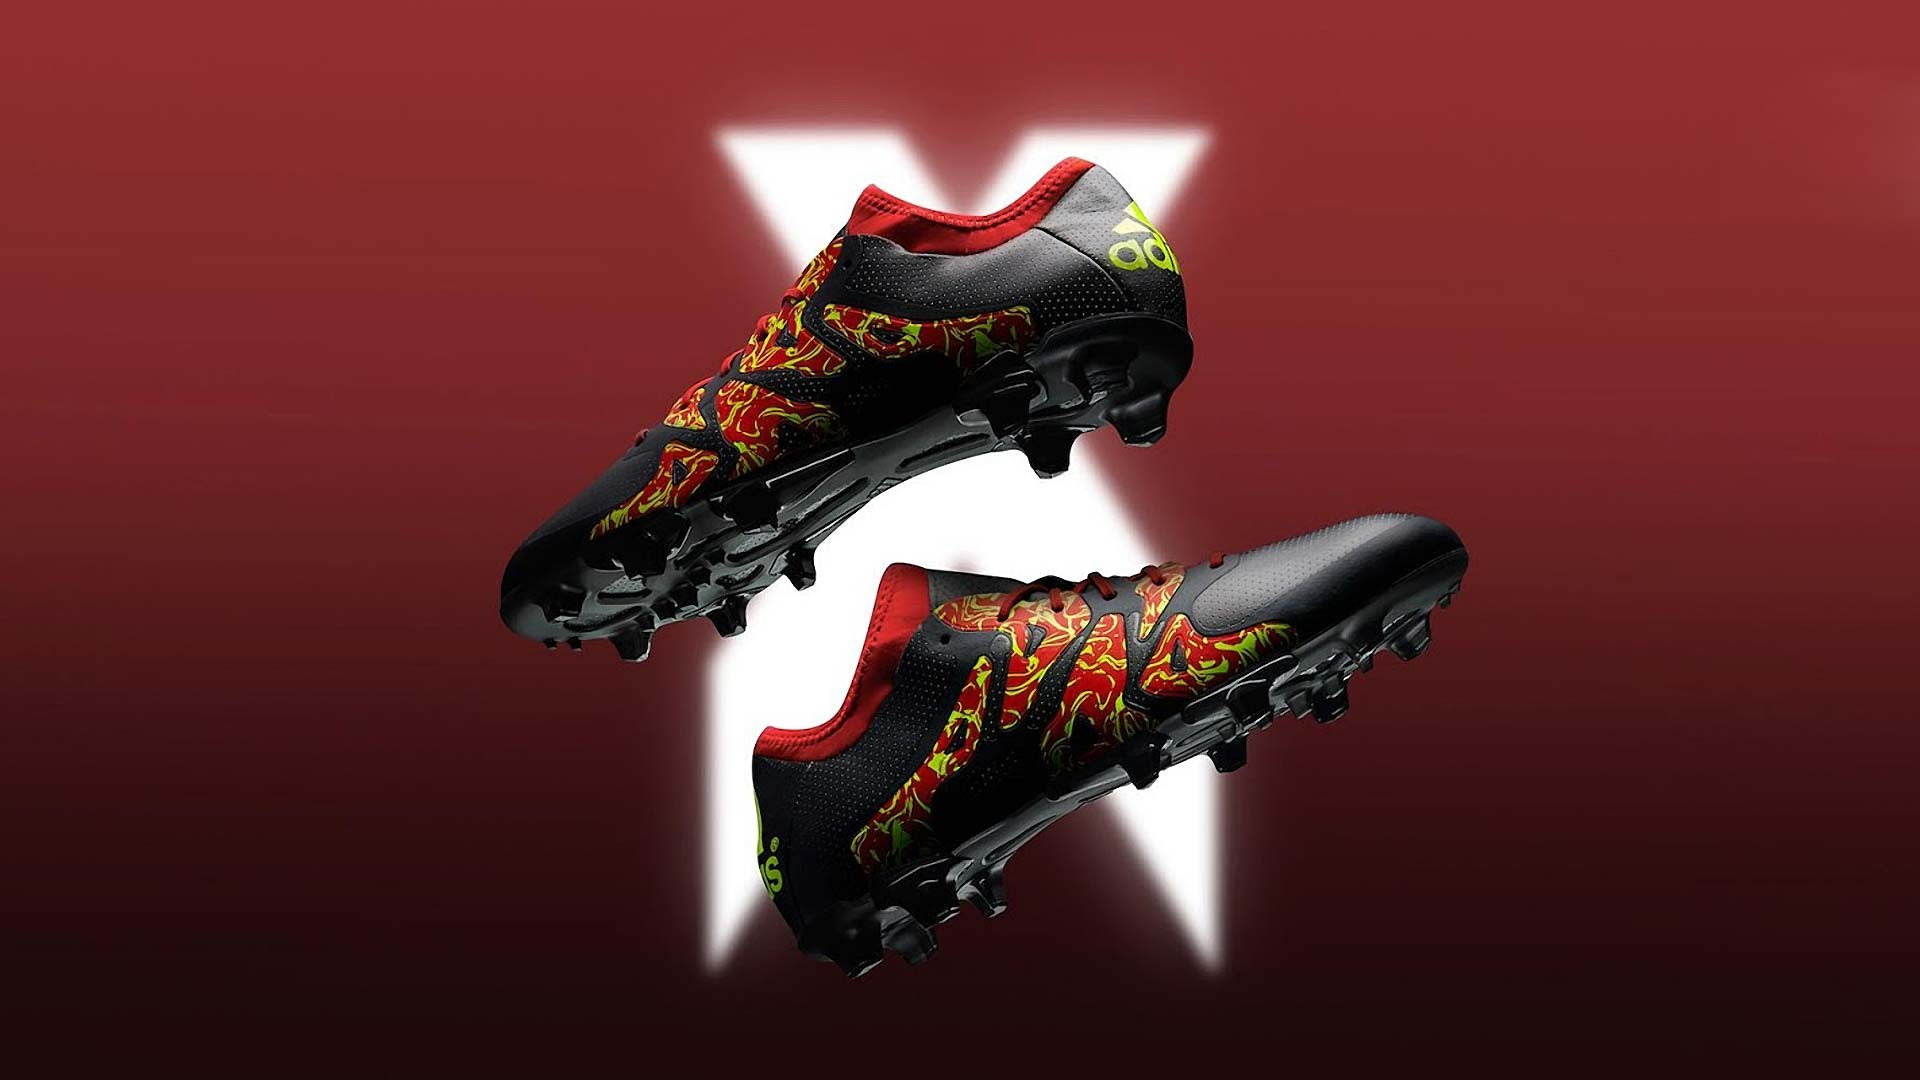 Soccer cleats wallpapers 62 images - Adidas football hd wallpapers ...